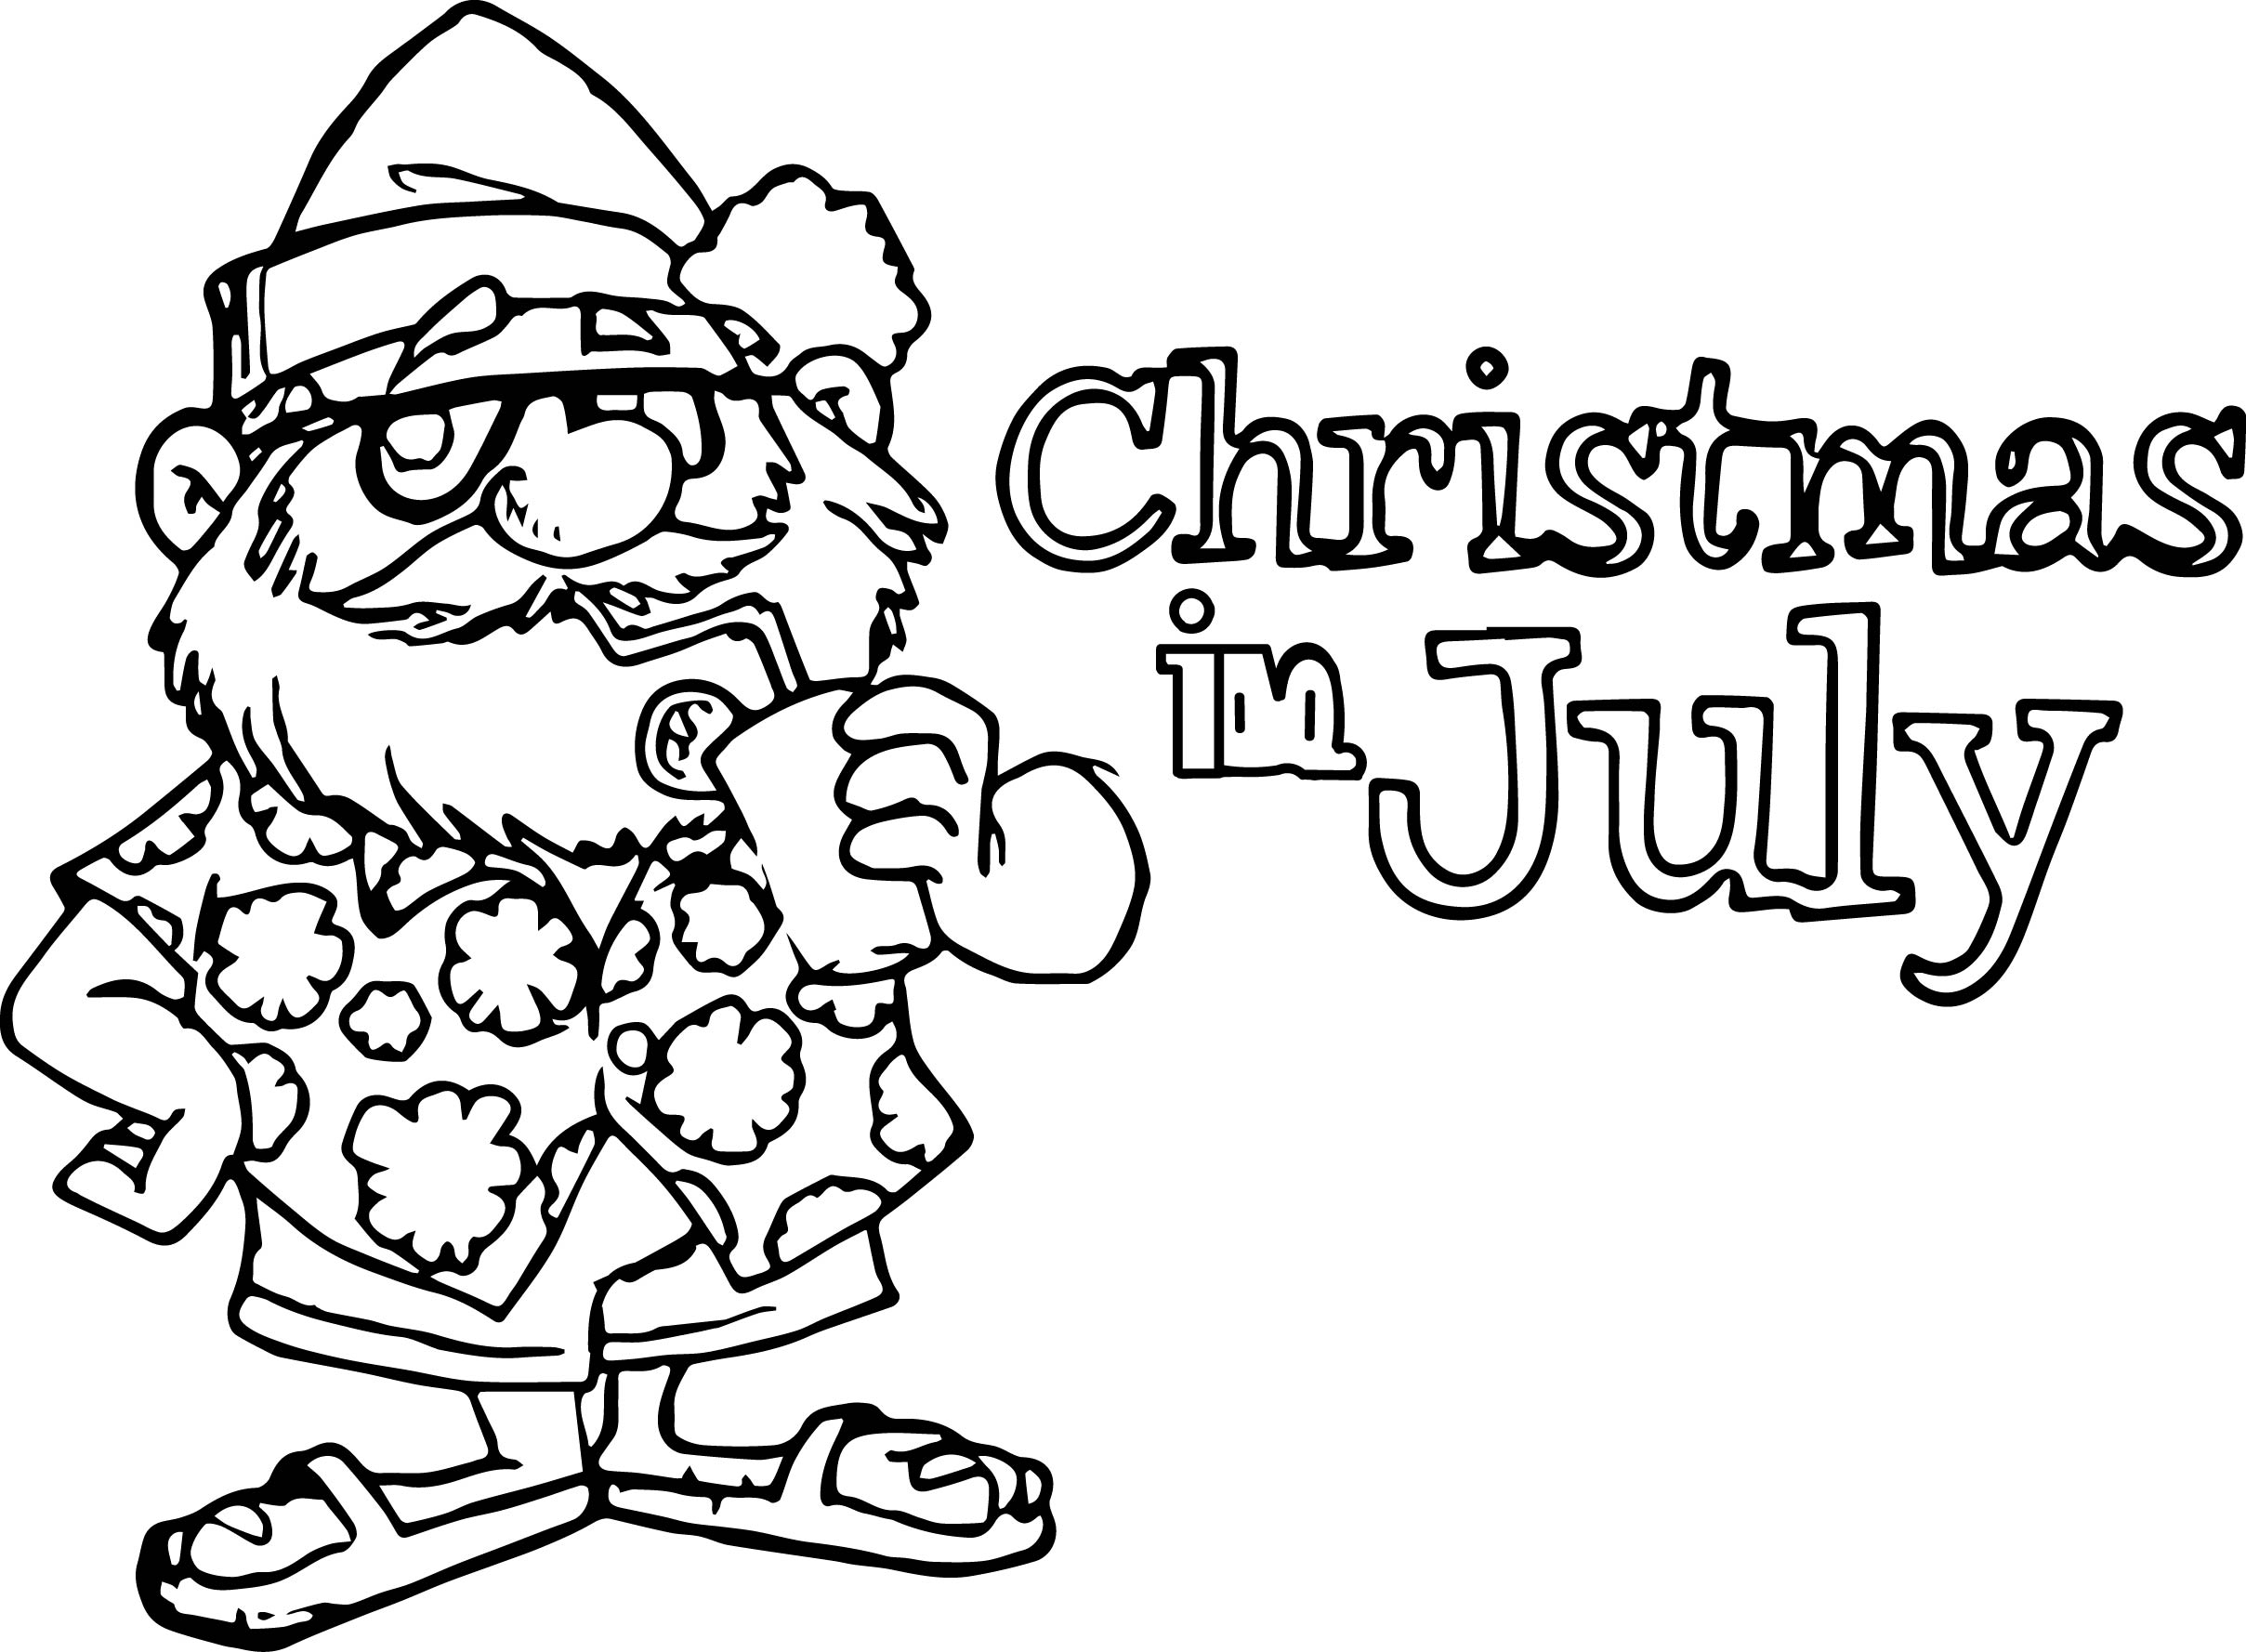 2417x1778 Of July Christmas In July Coloring Page Wecoloringpage